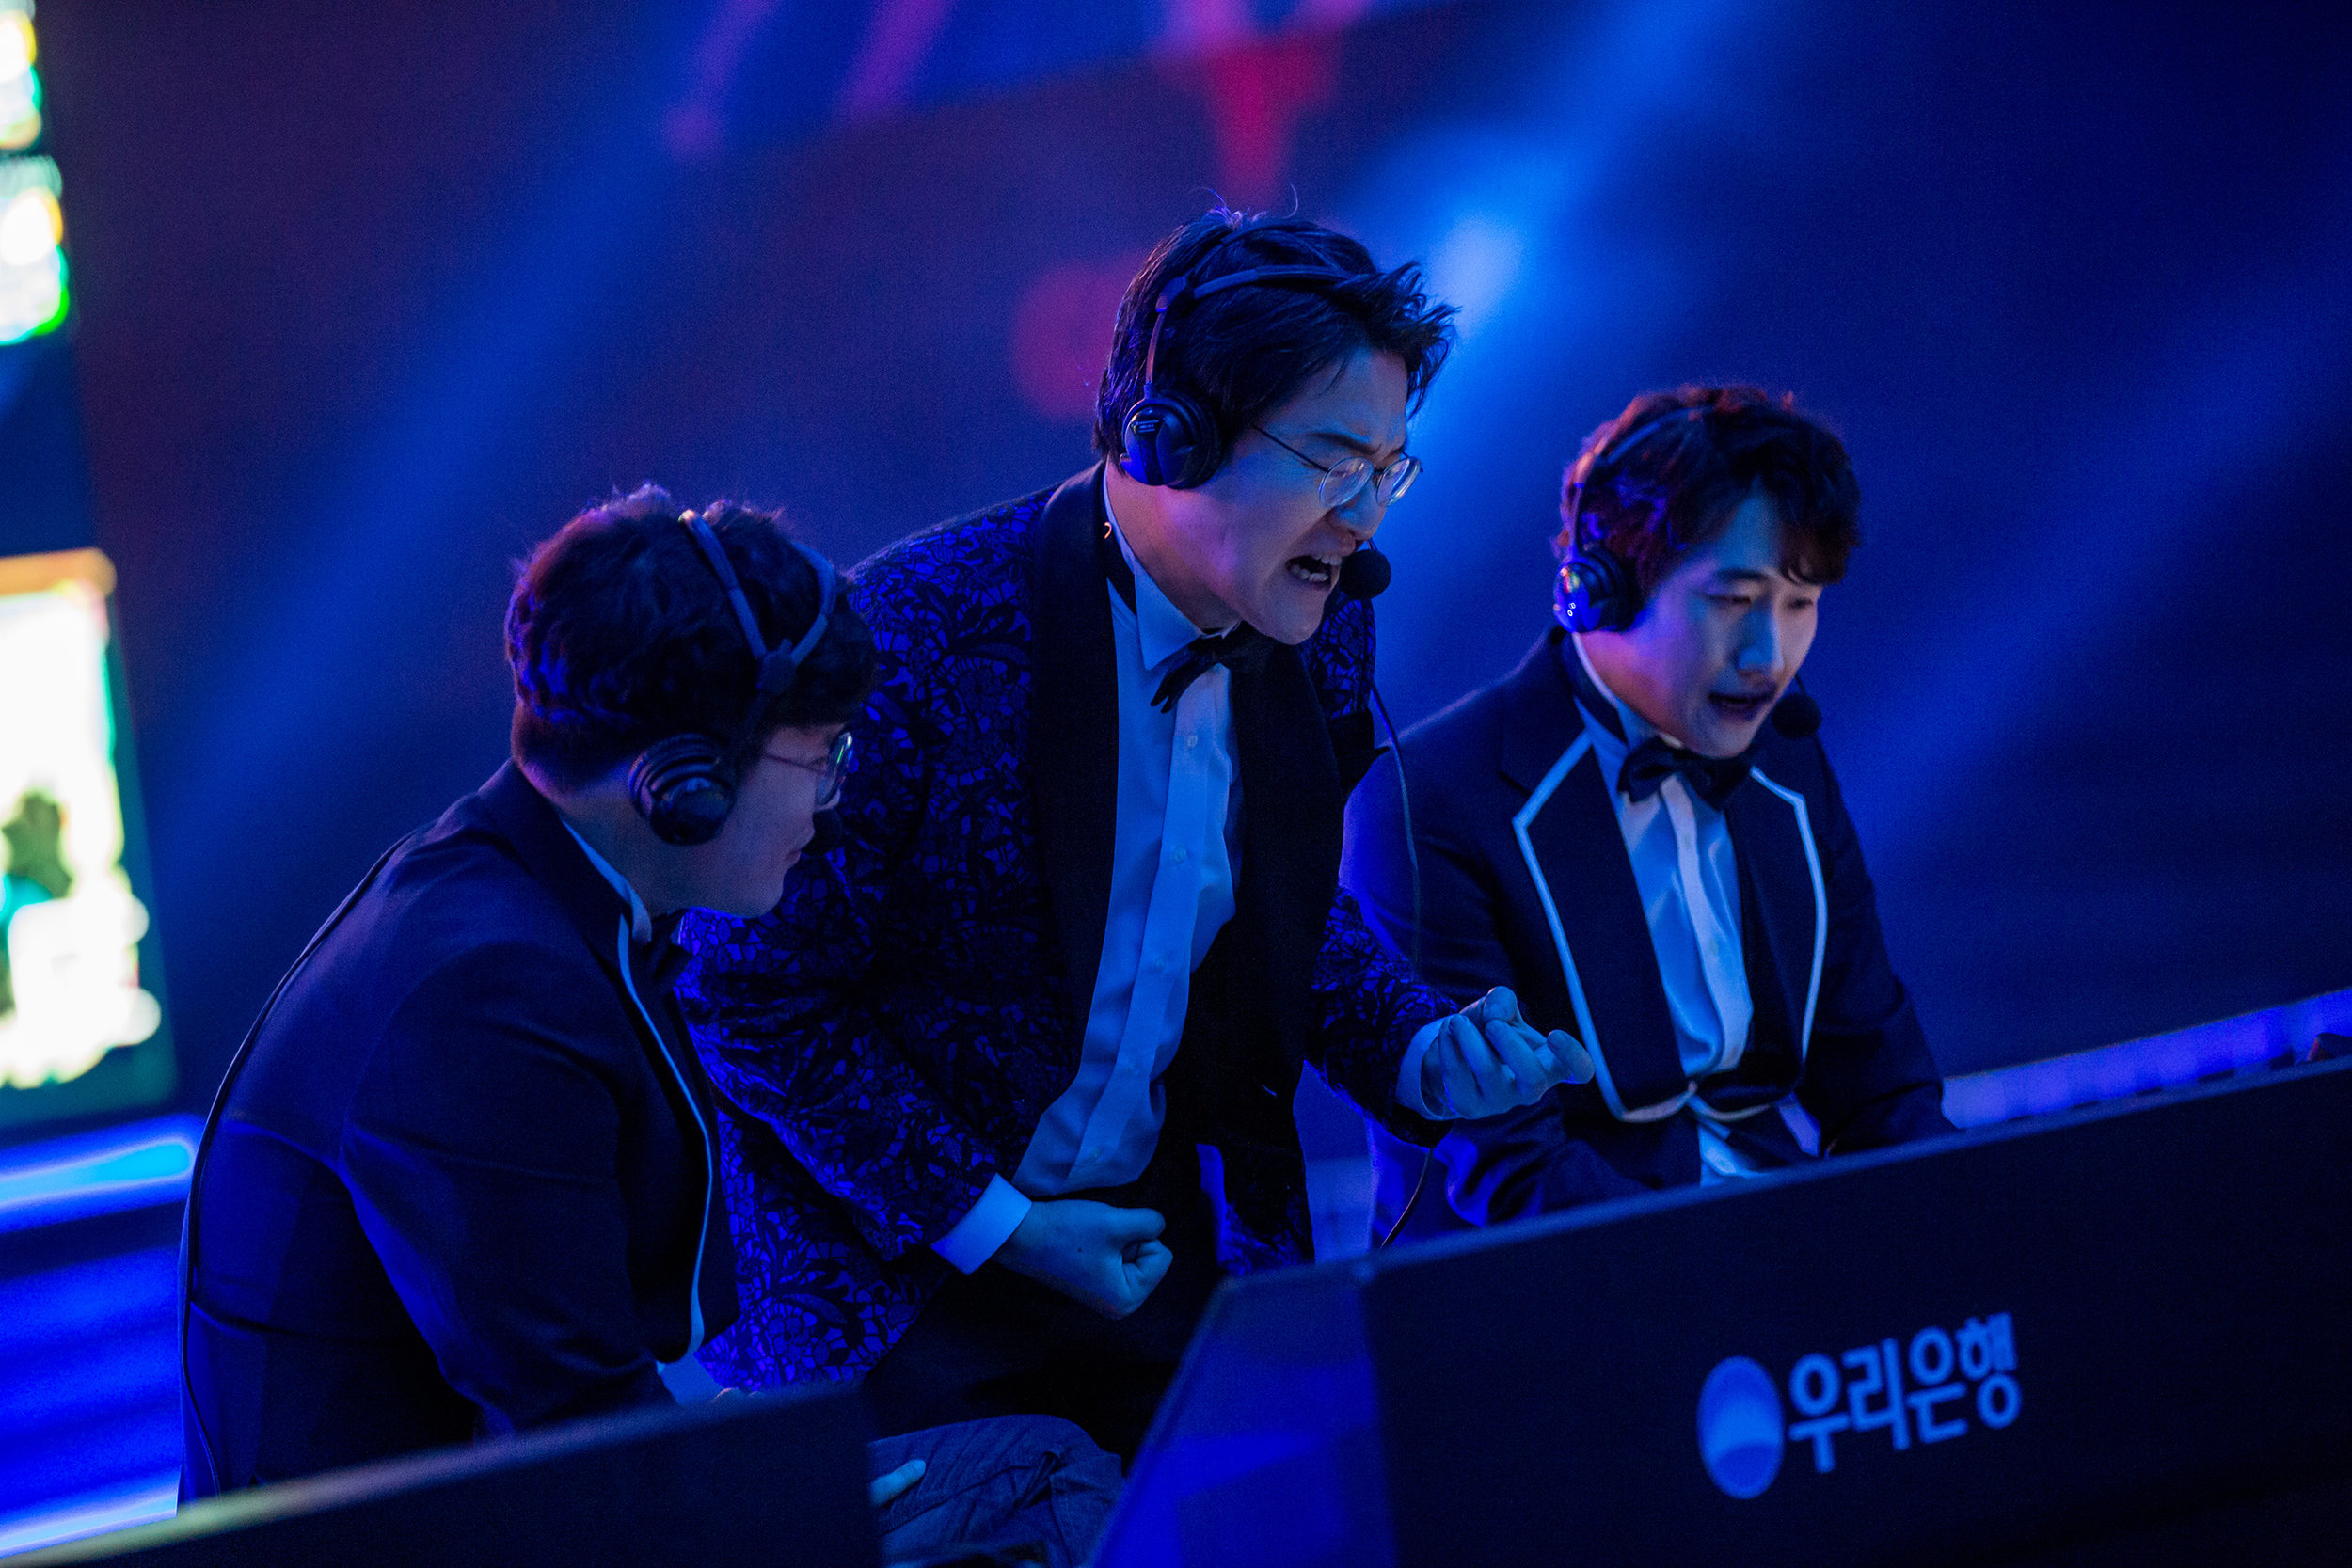 APRIL 13: Casters reacting to gameplay while SK Telecom T1 wins 3-0 over Griffin at LCK Spring Finals at Jamsil Sports Center on April 13, 2019 in Seoul, Korea. Photo by Timo Verdeil/ESPAT Media